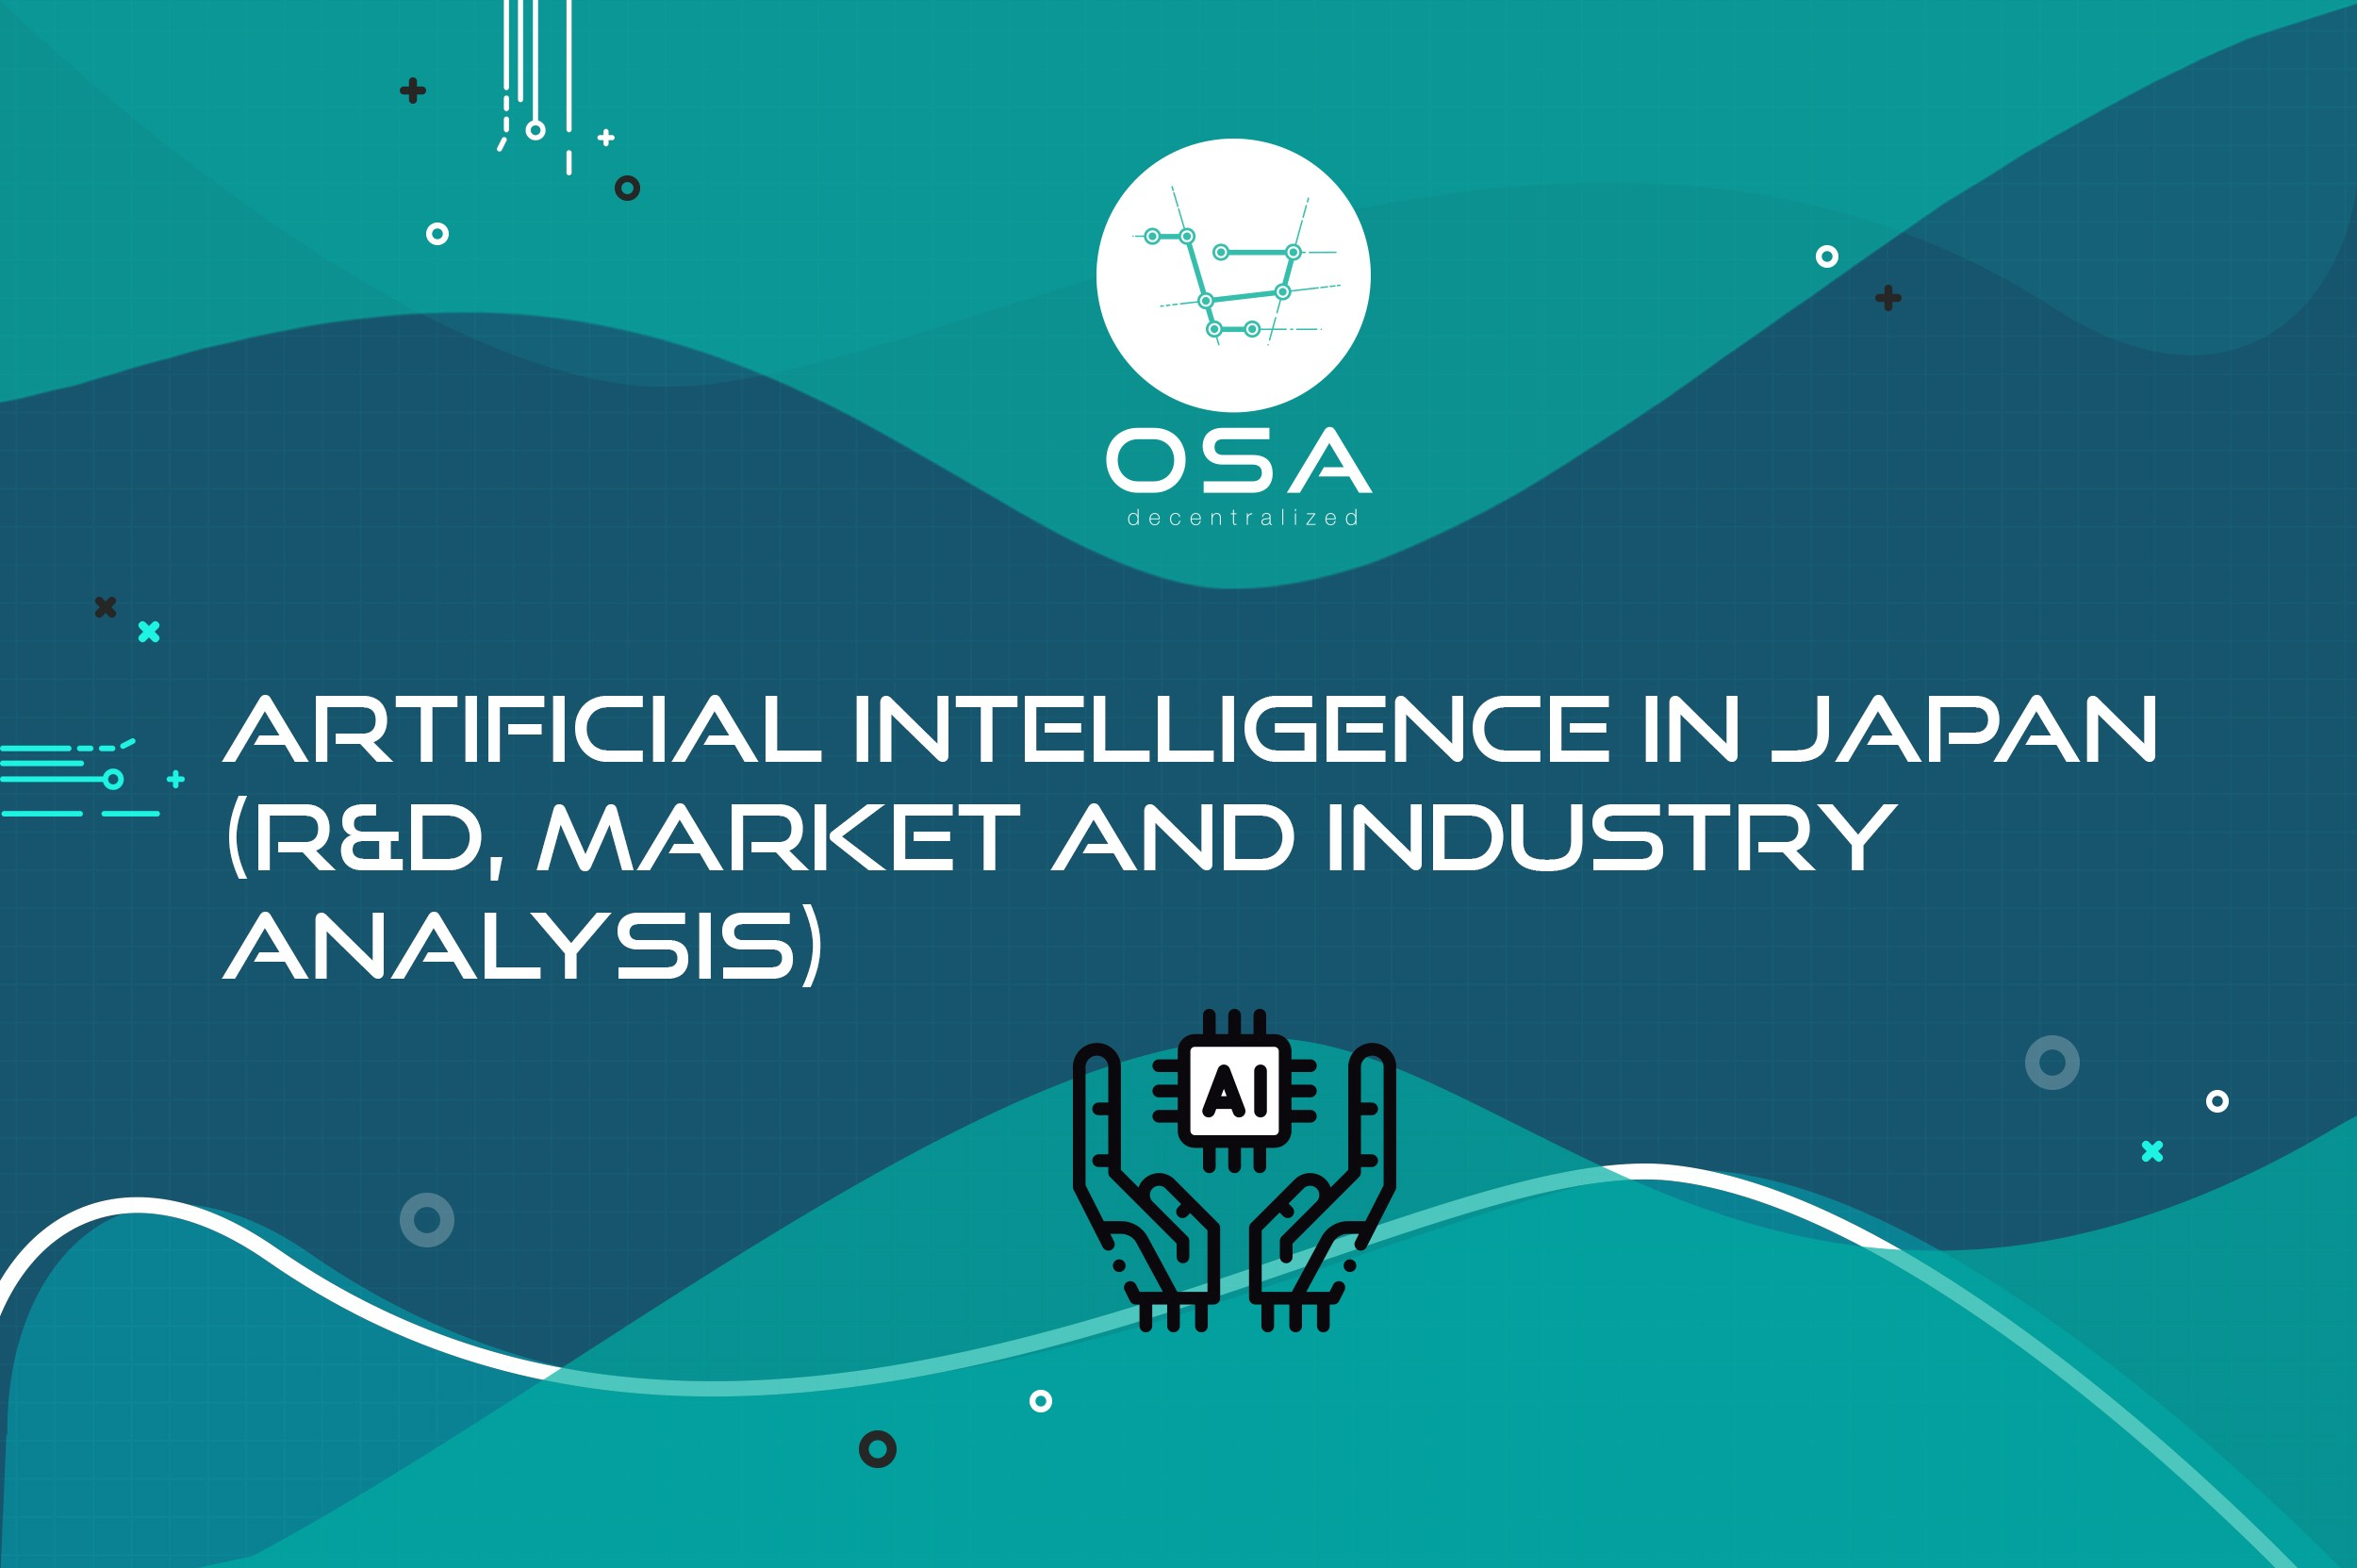 Artificial Intelligence in Japan (R&D, Market and Industry Analysis)